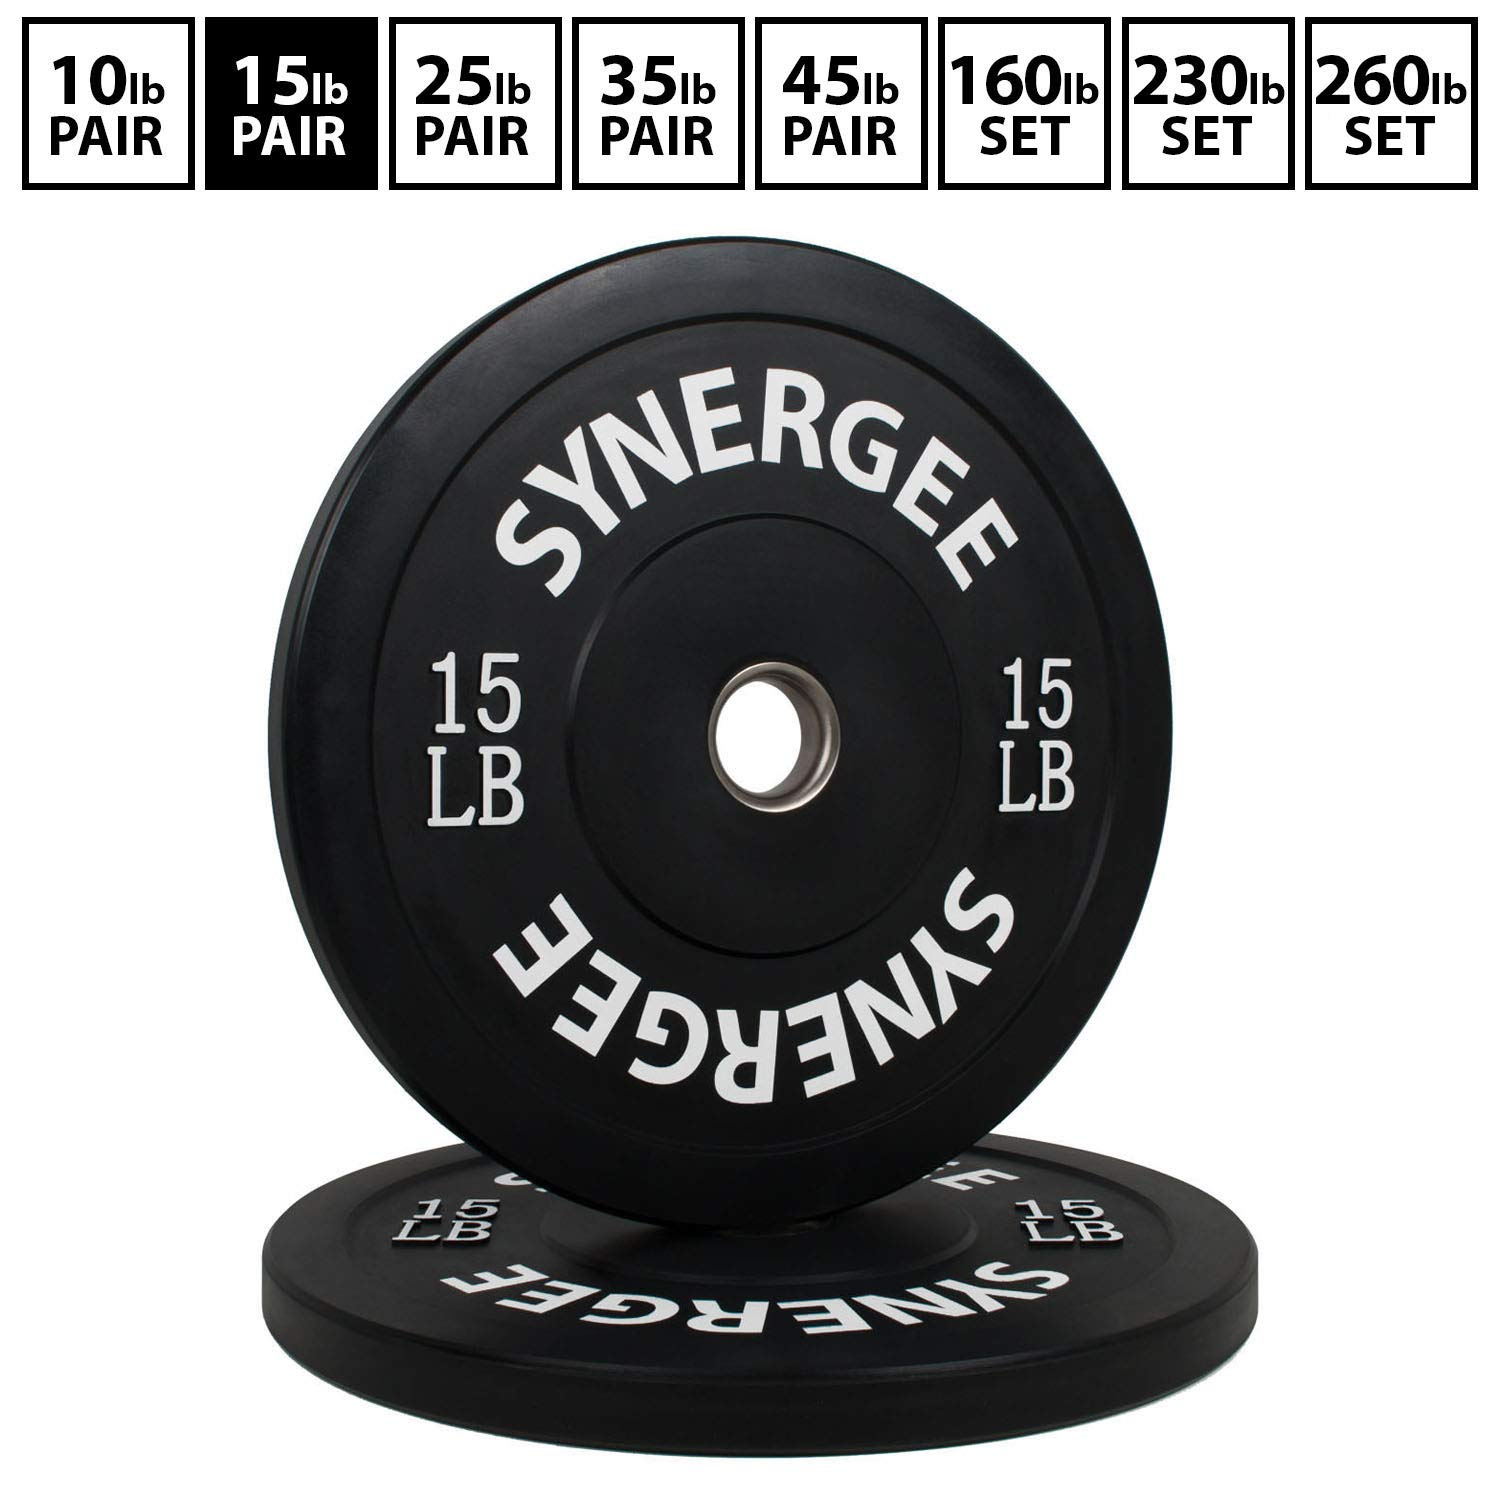 York Barbell 29023Iso-Grip Rubber Encased Steel Composite Olympic Grip Plate 25 lb Pro-Motion Distributing Black Direct